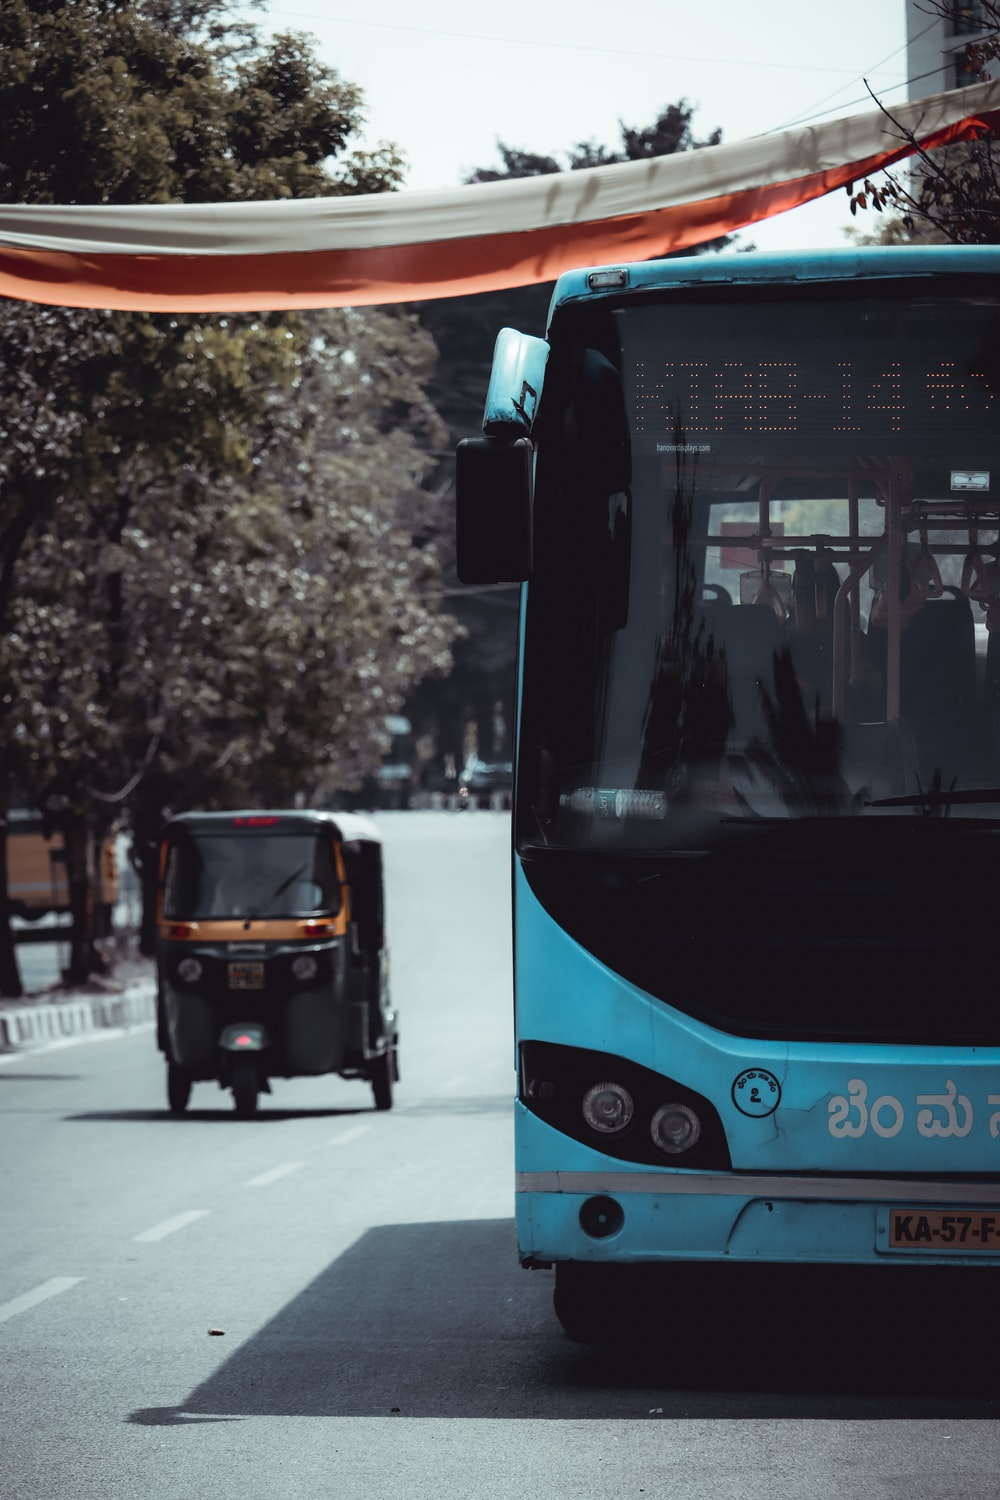 blue and black bus on road during daytime